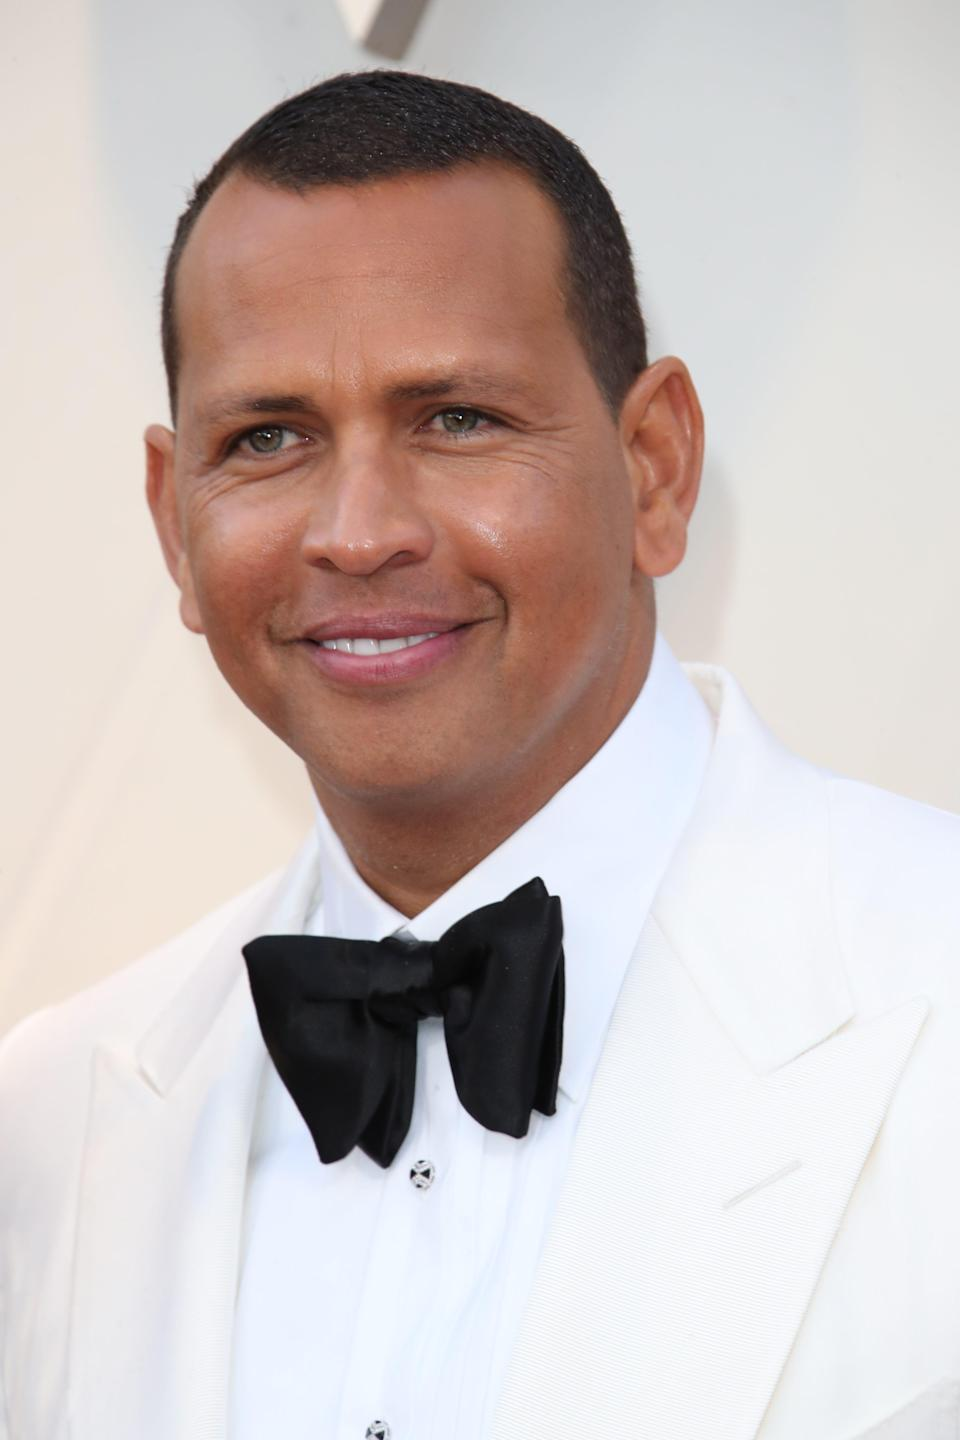 The Timberwolves, who have advanced to the playoffs just once in the past 17 seasons, could use some of the glitz and glamour that Alex Rodriguez can bring as a new owner.